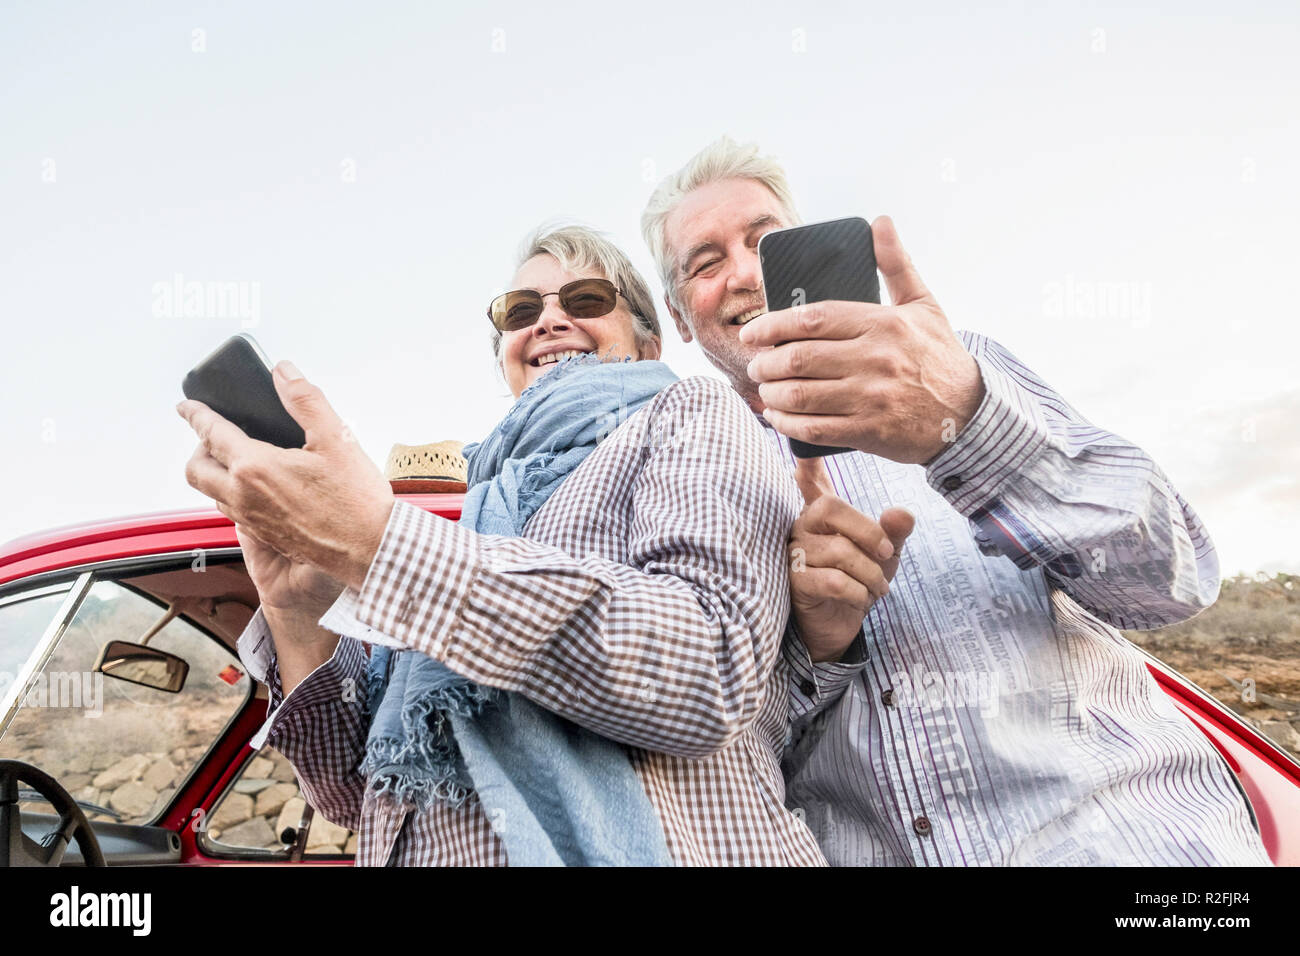 alternative point of view from the bottom for youthful senior couple caucasian people using smartphone to take pictures and connect to internet. travel and vacation summer time concept for happy people Stock Photo